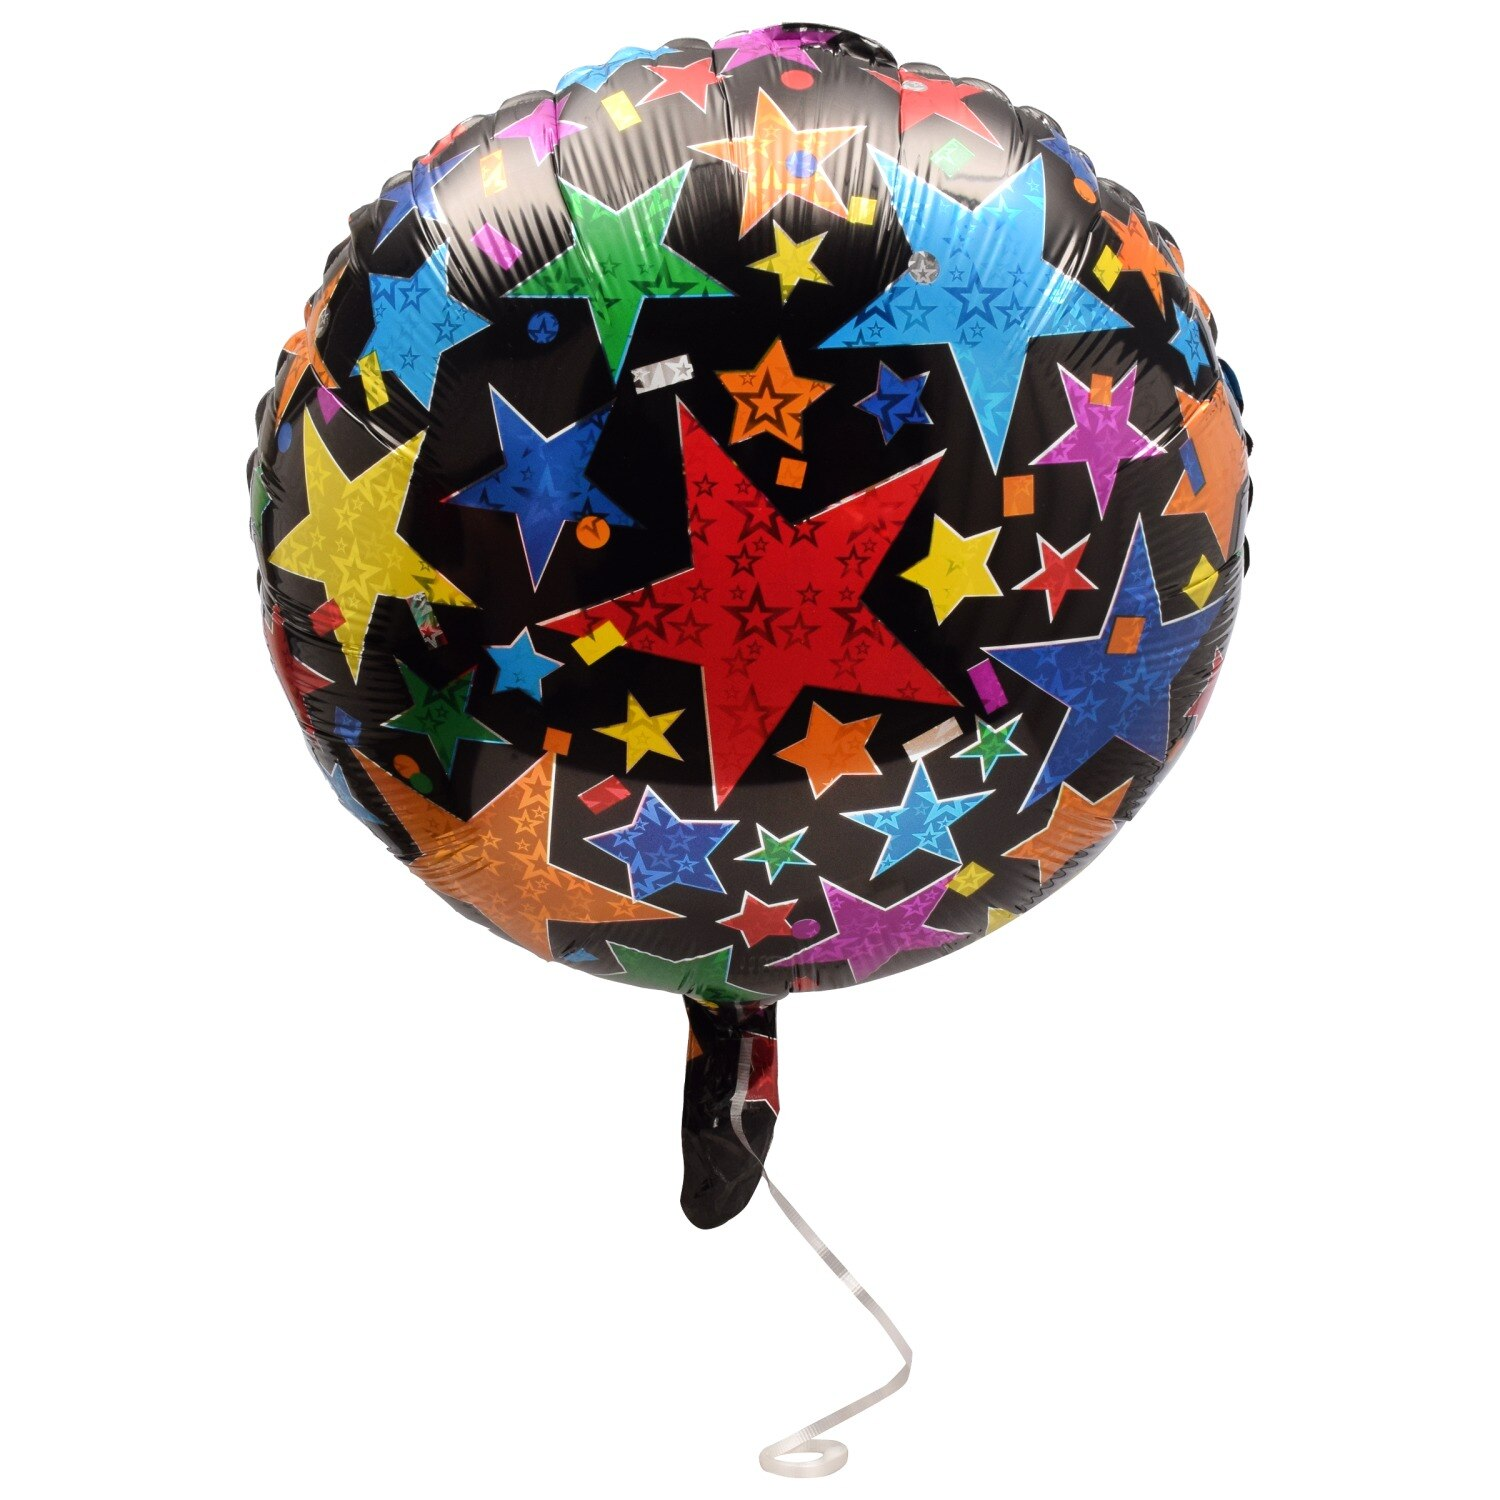 Star Confetti Foil Balloons With Attached Ribbons, 18 In